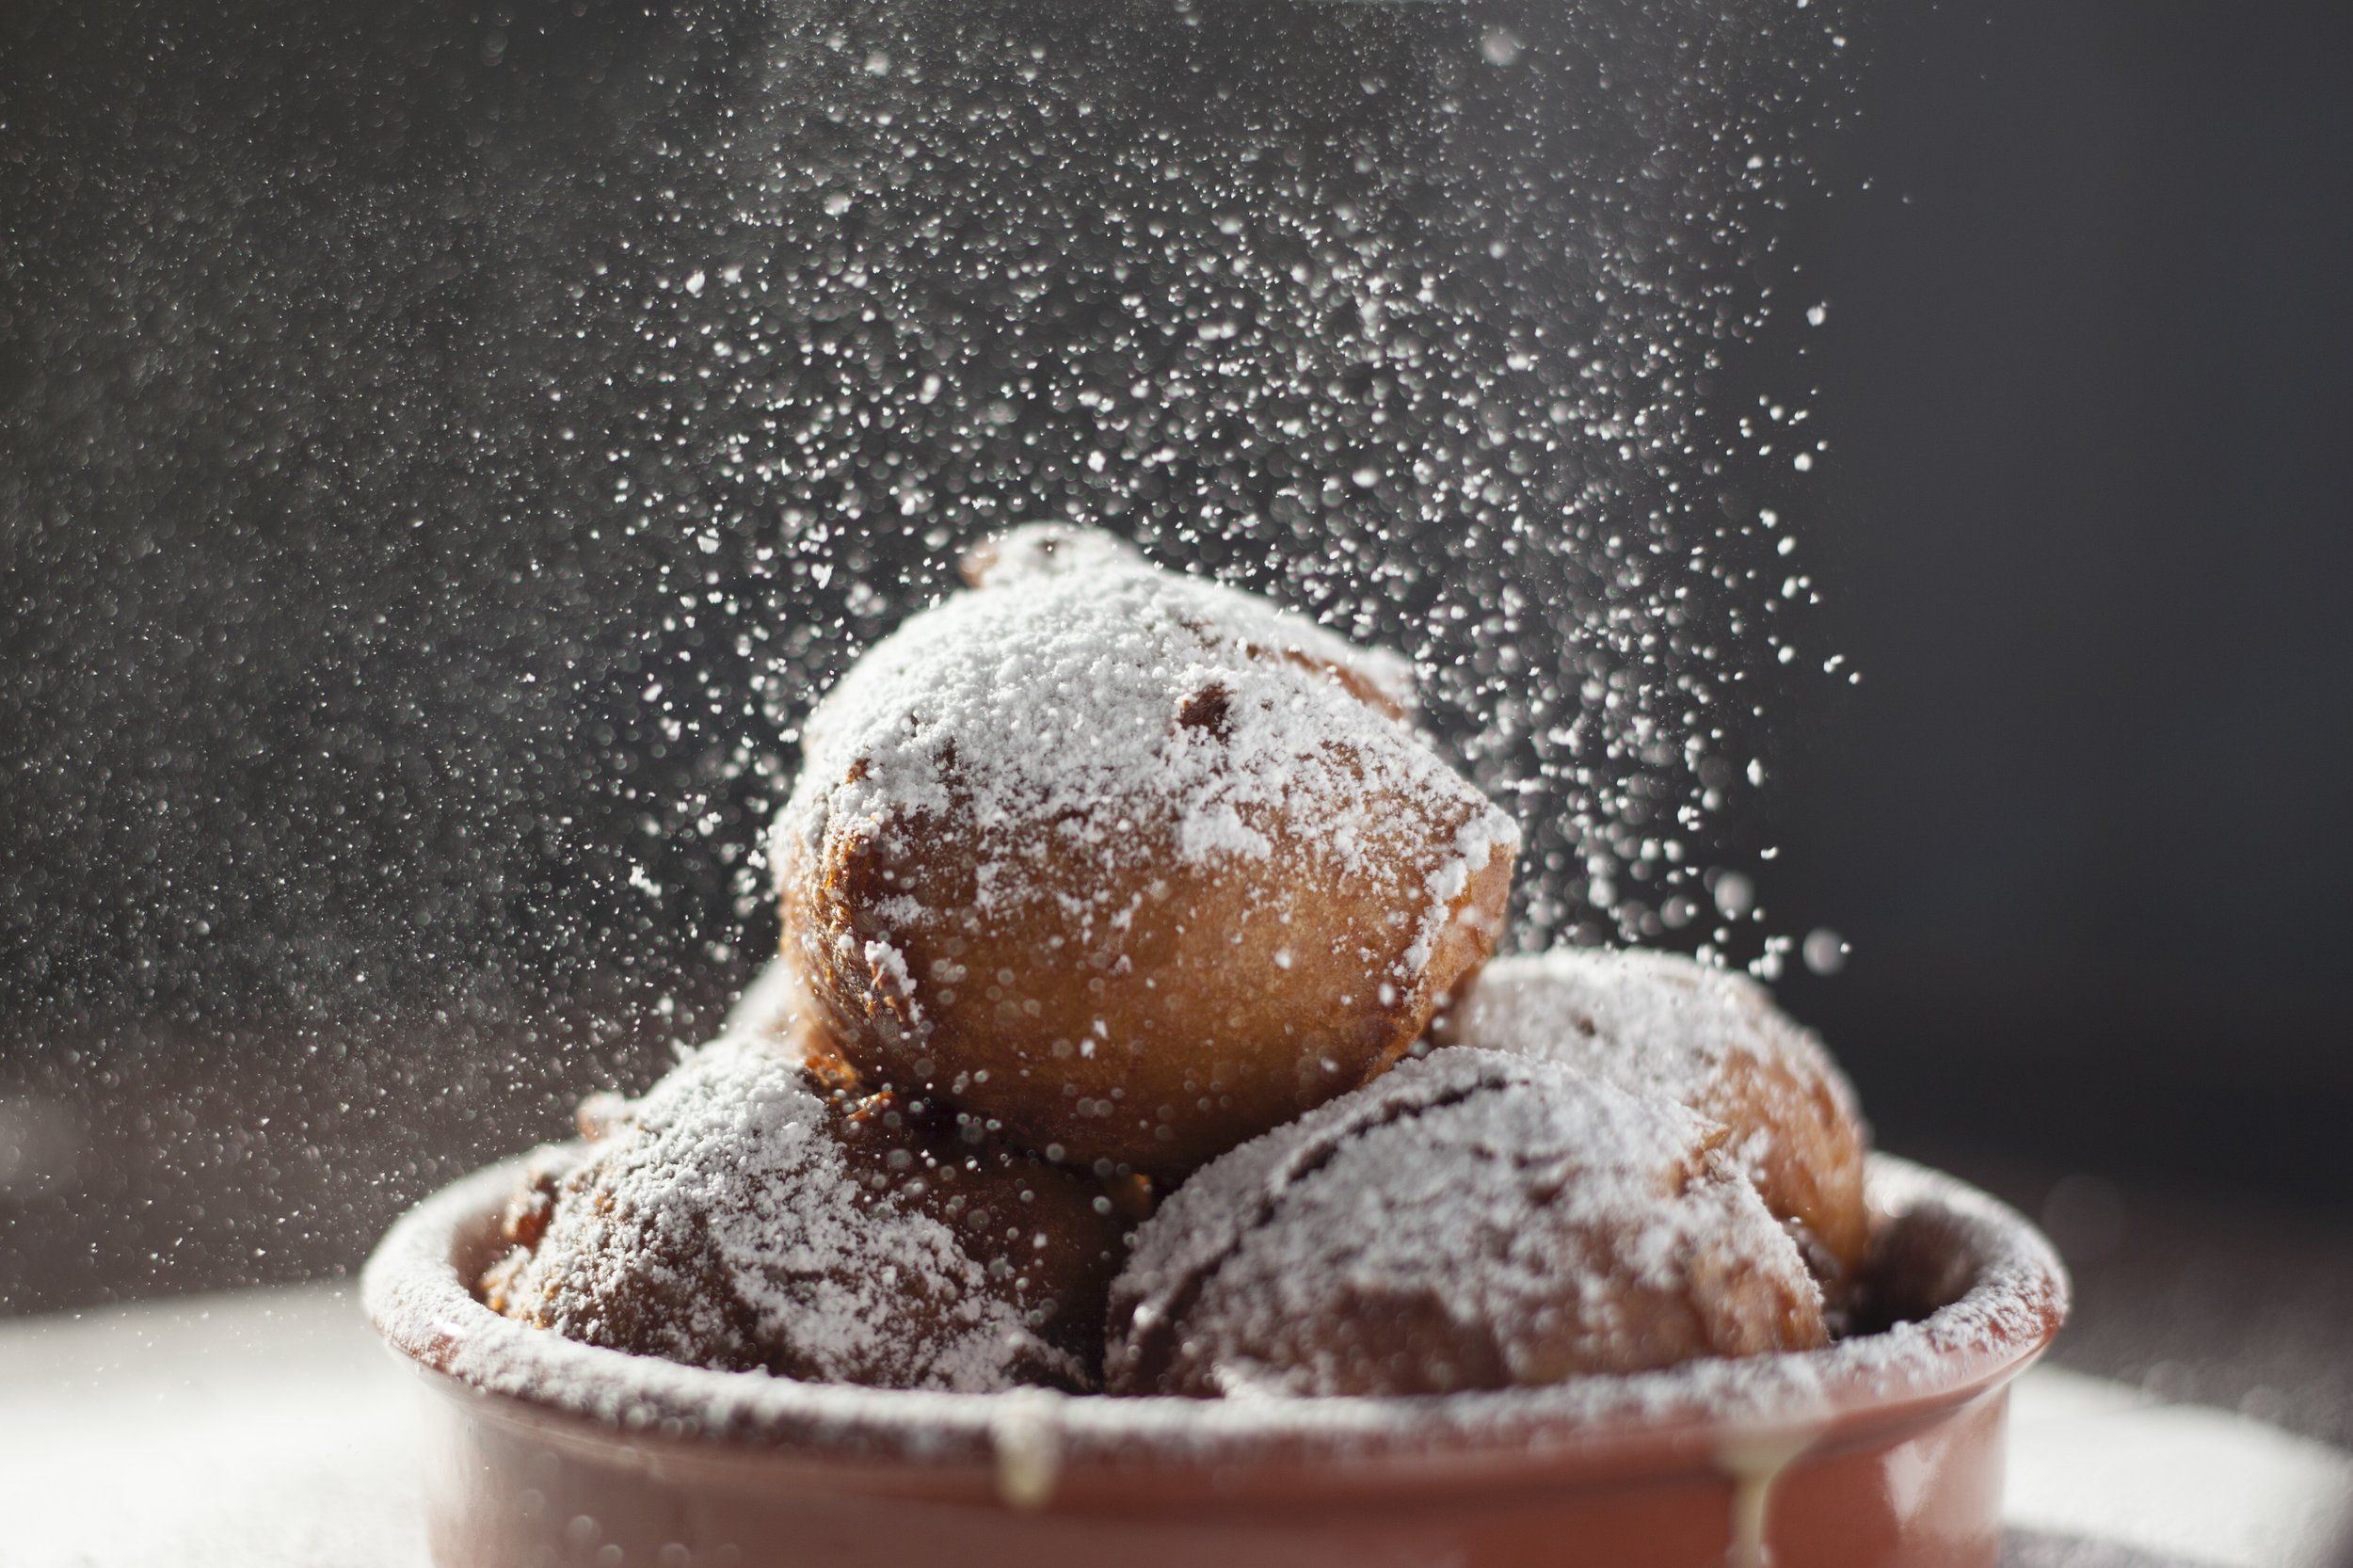 Pate a choux Beignets with powdered sugar